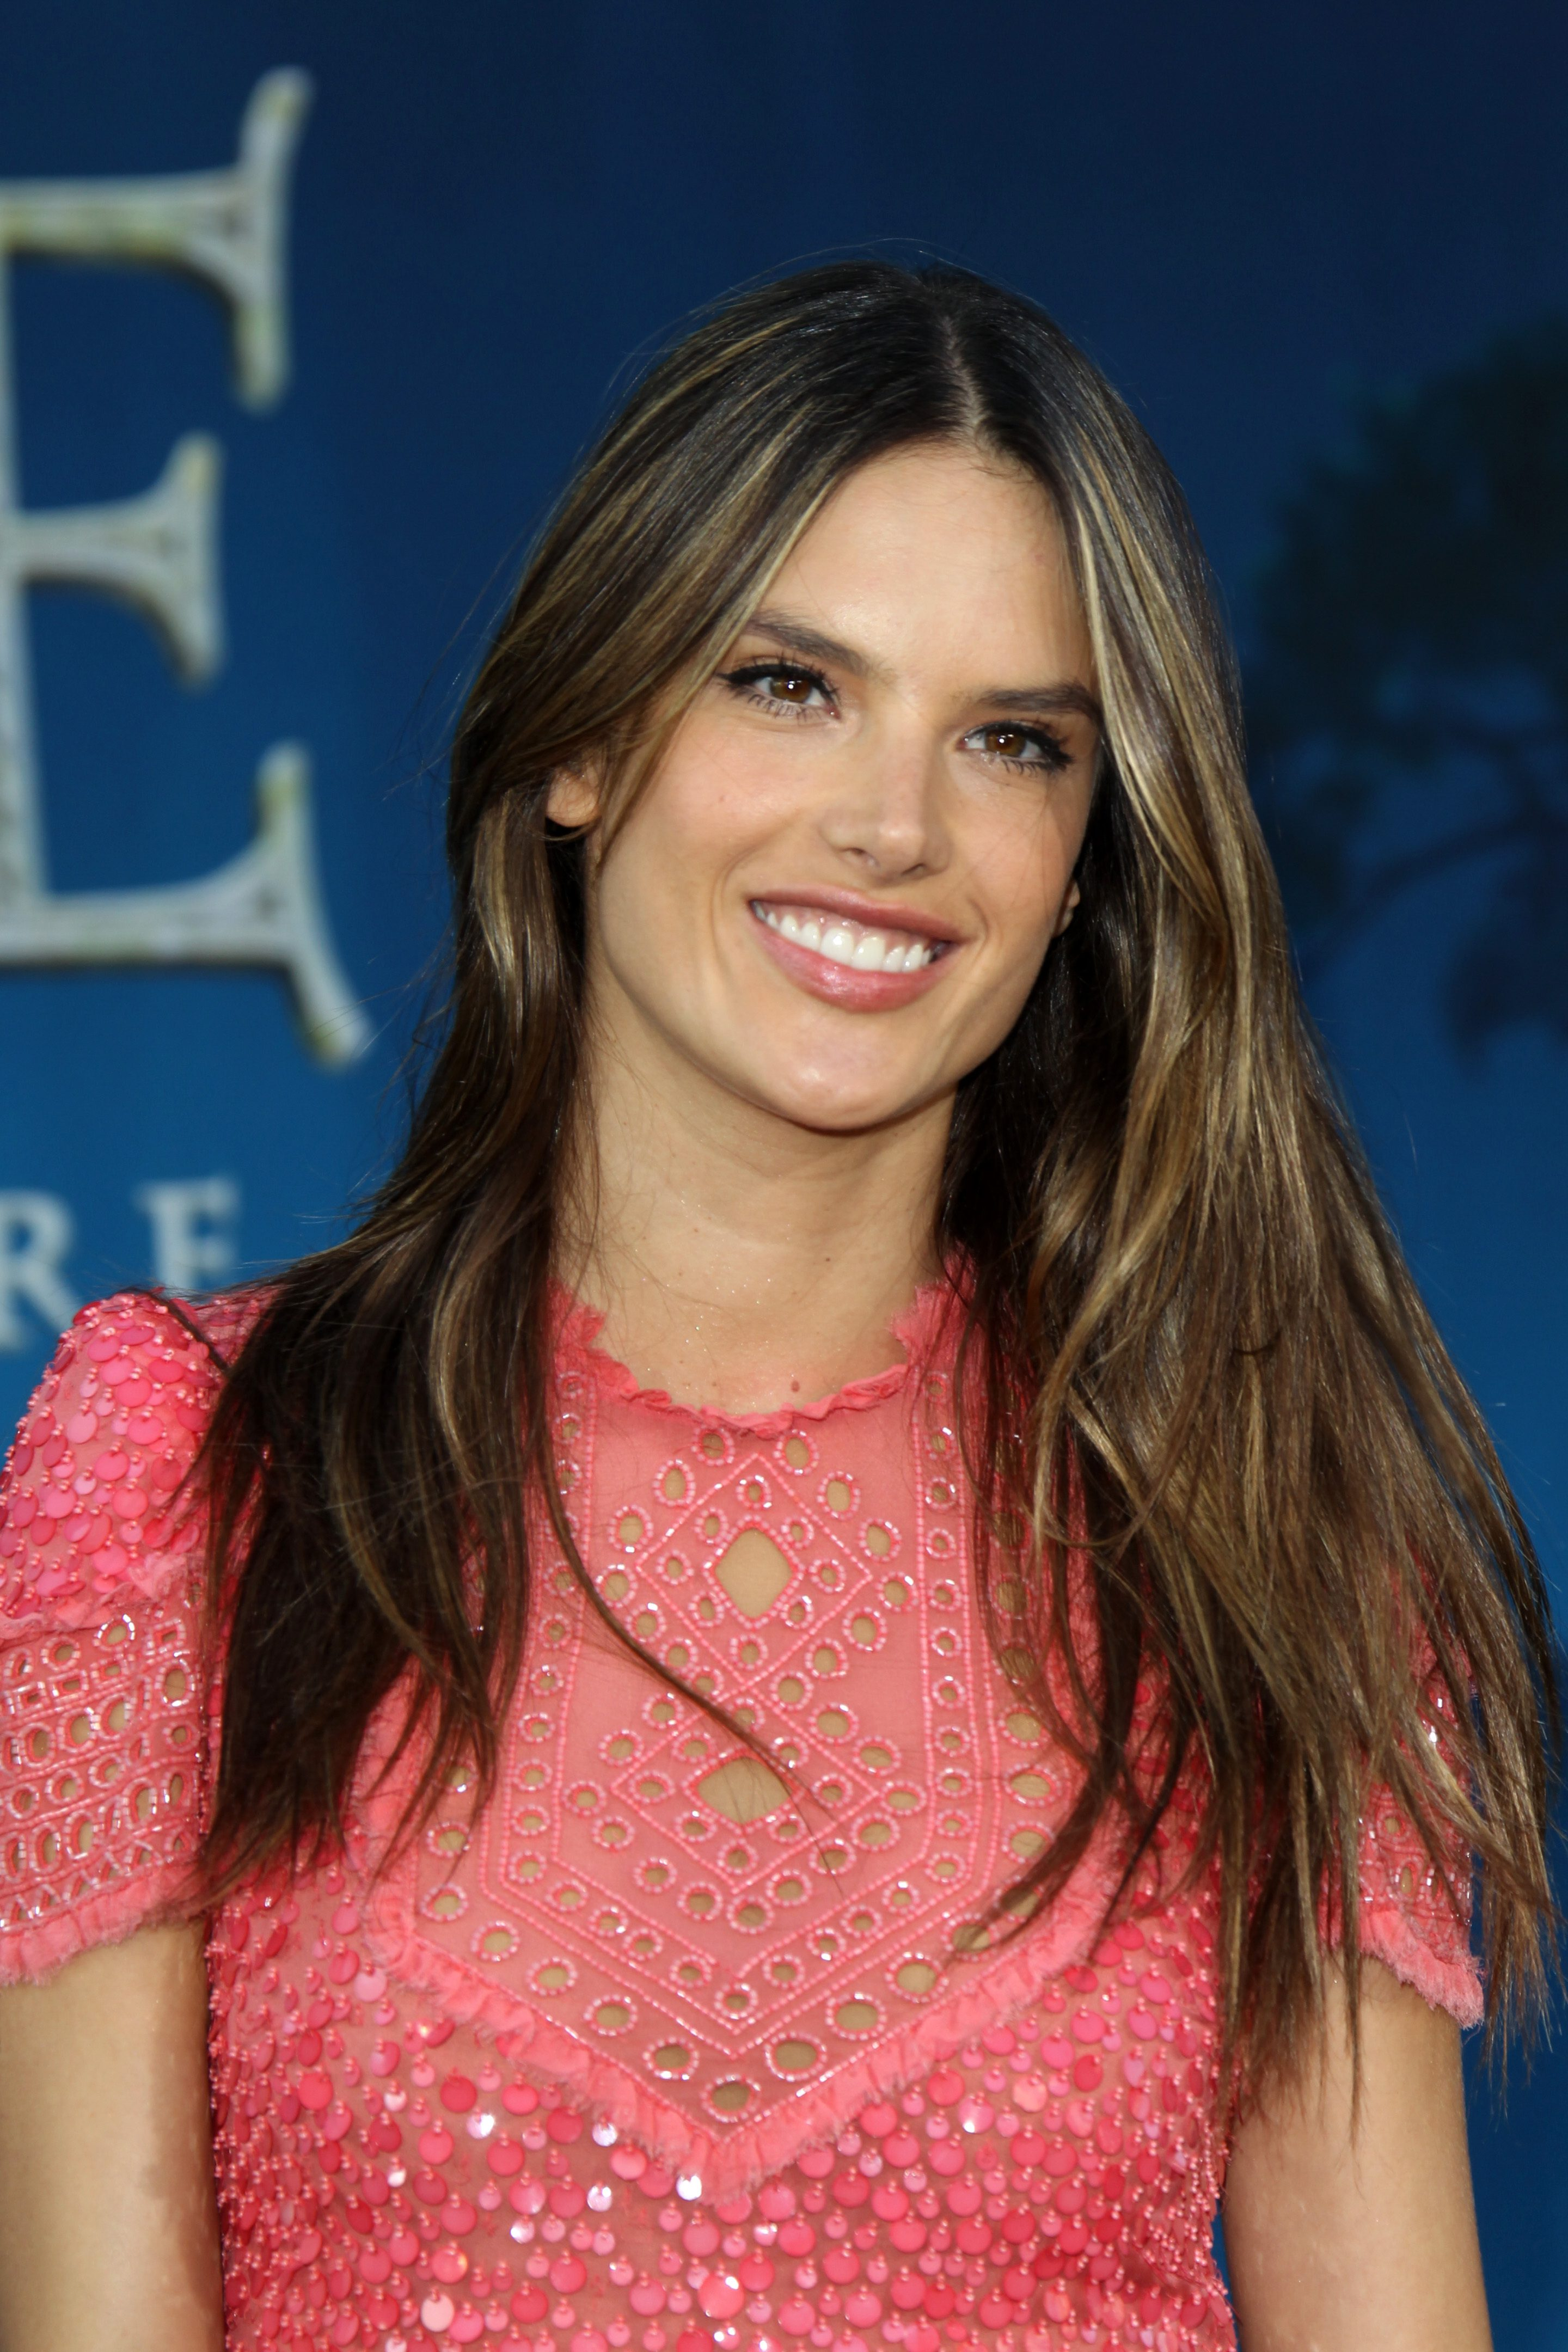 Alessandra Ambrosio's Chocolate Brown Hair with Blonde Highlights